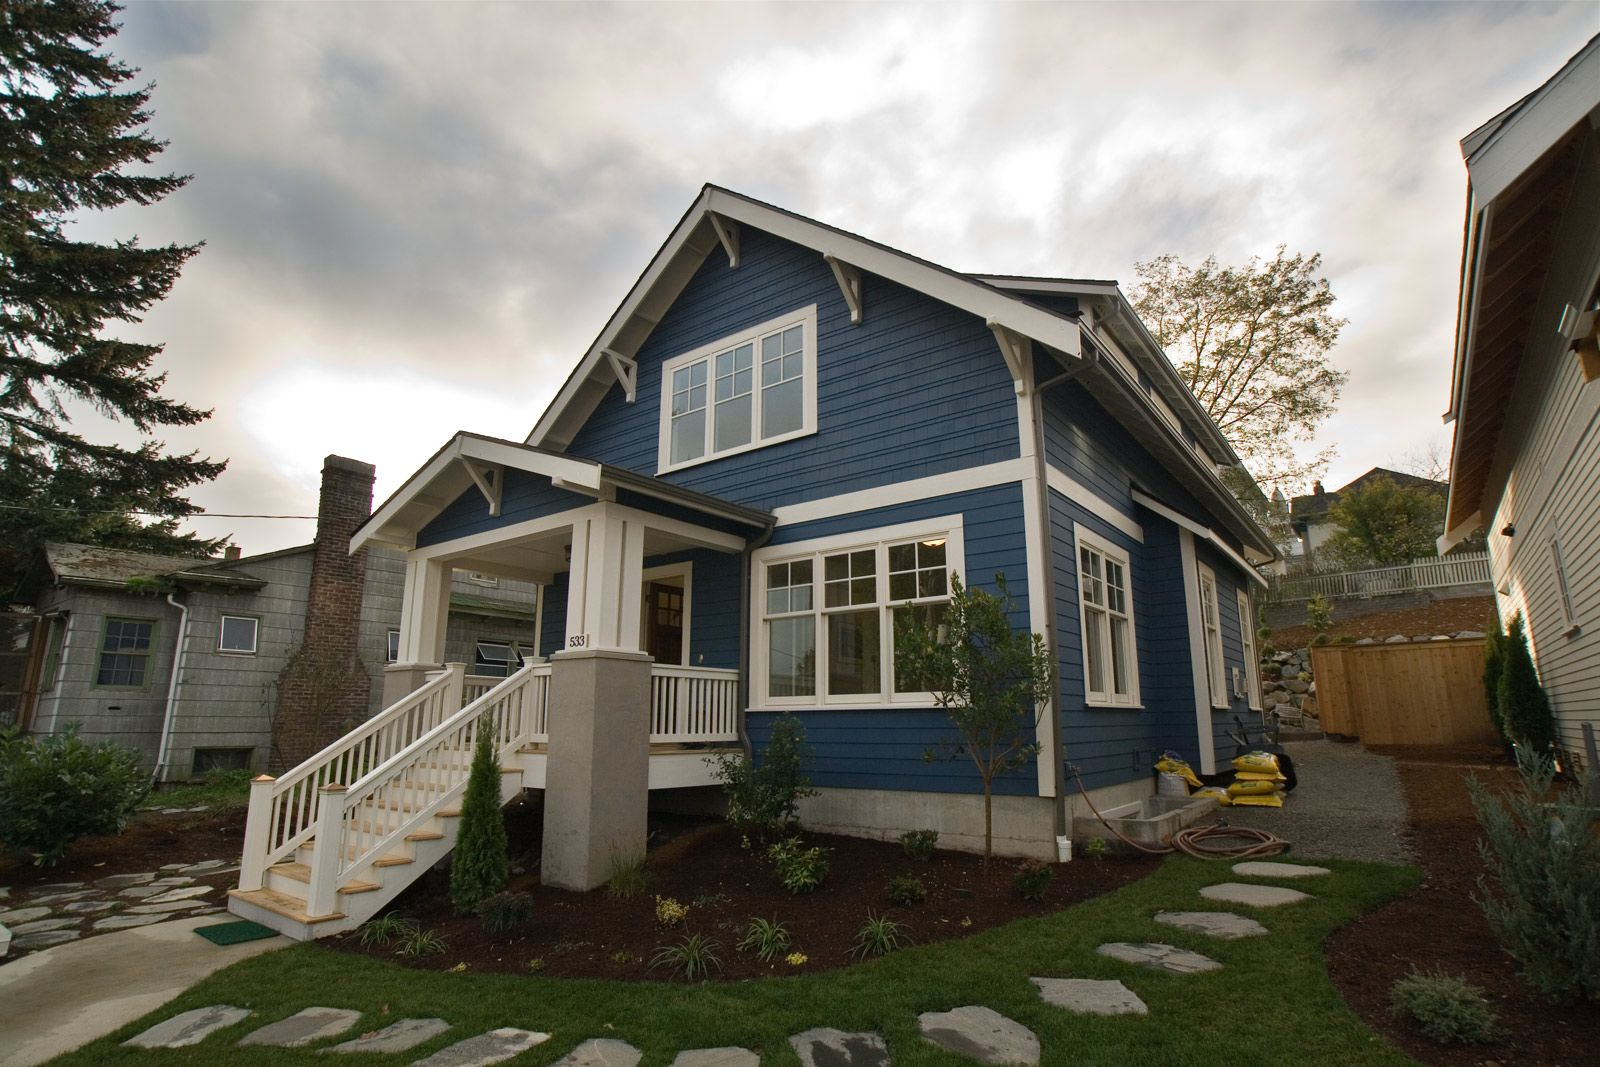 Classic craftsman bungalow colors for sale new 20th ave for Blue house builders